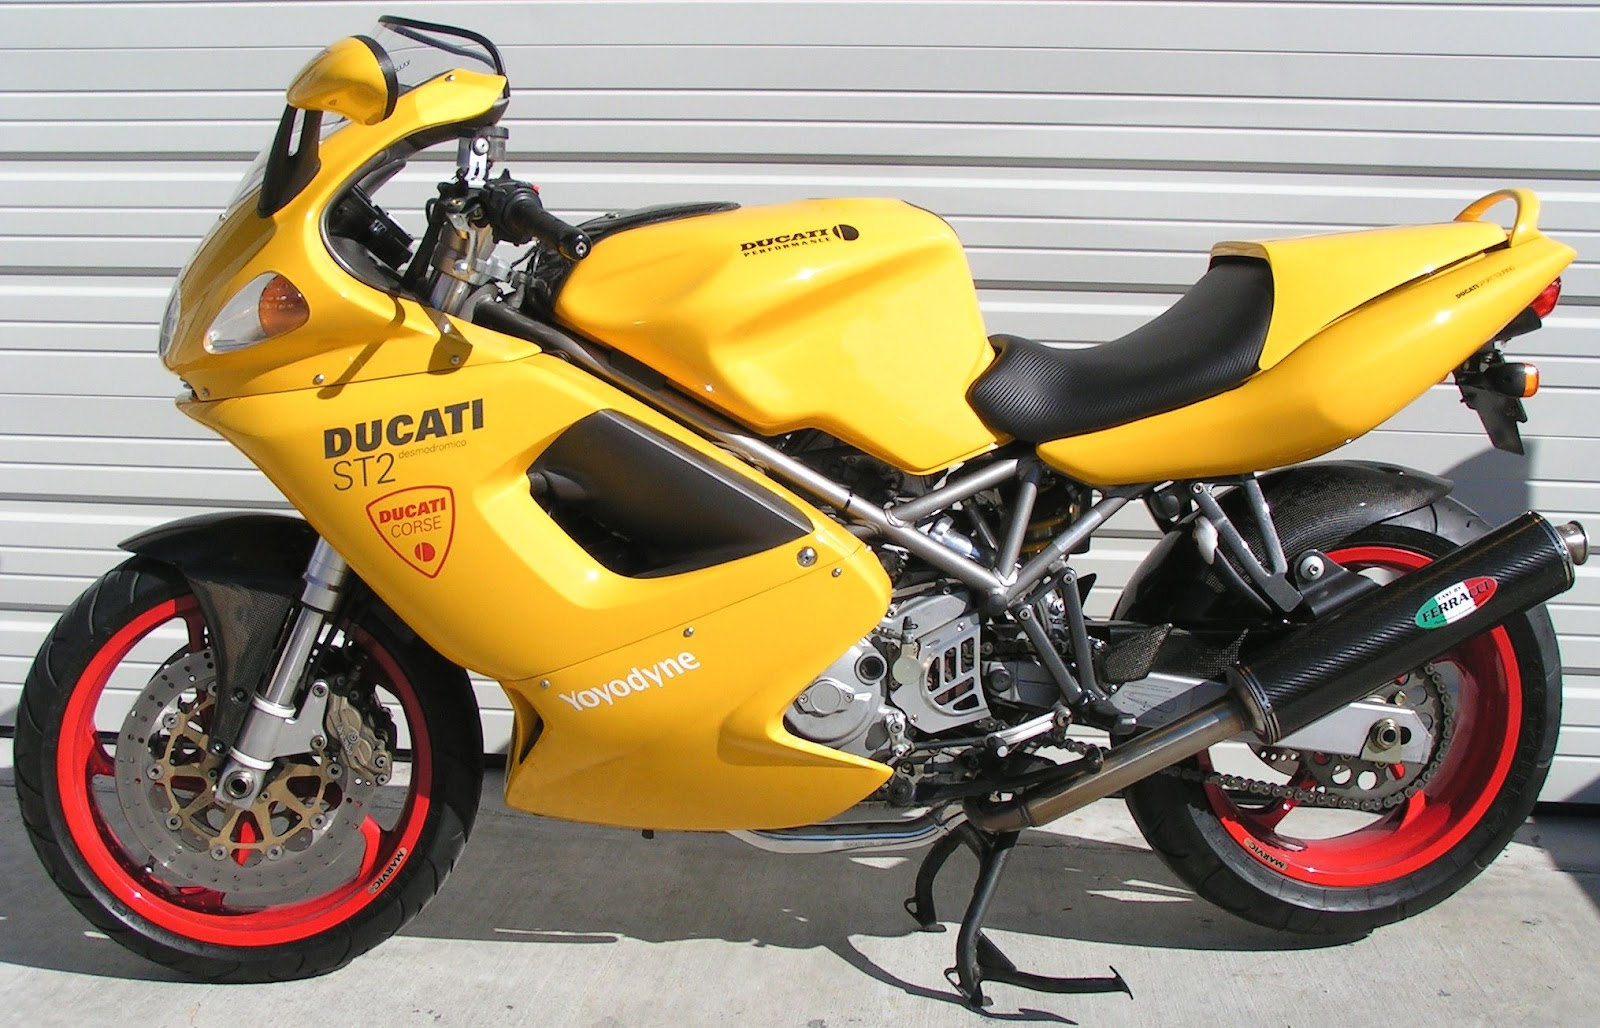 DUCATI SPORTTOURING ST2 ST4 2003 Owner Manual